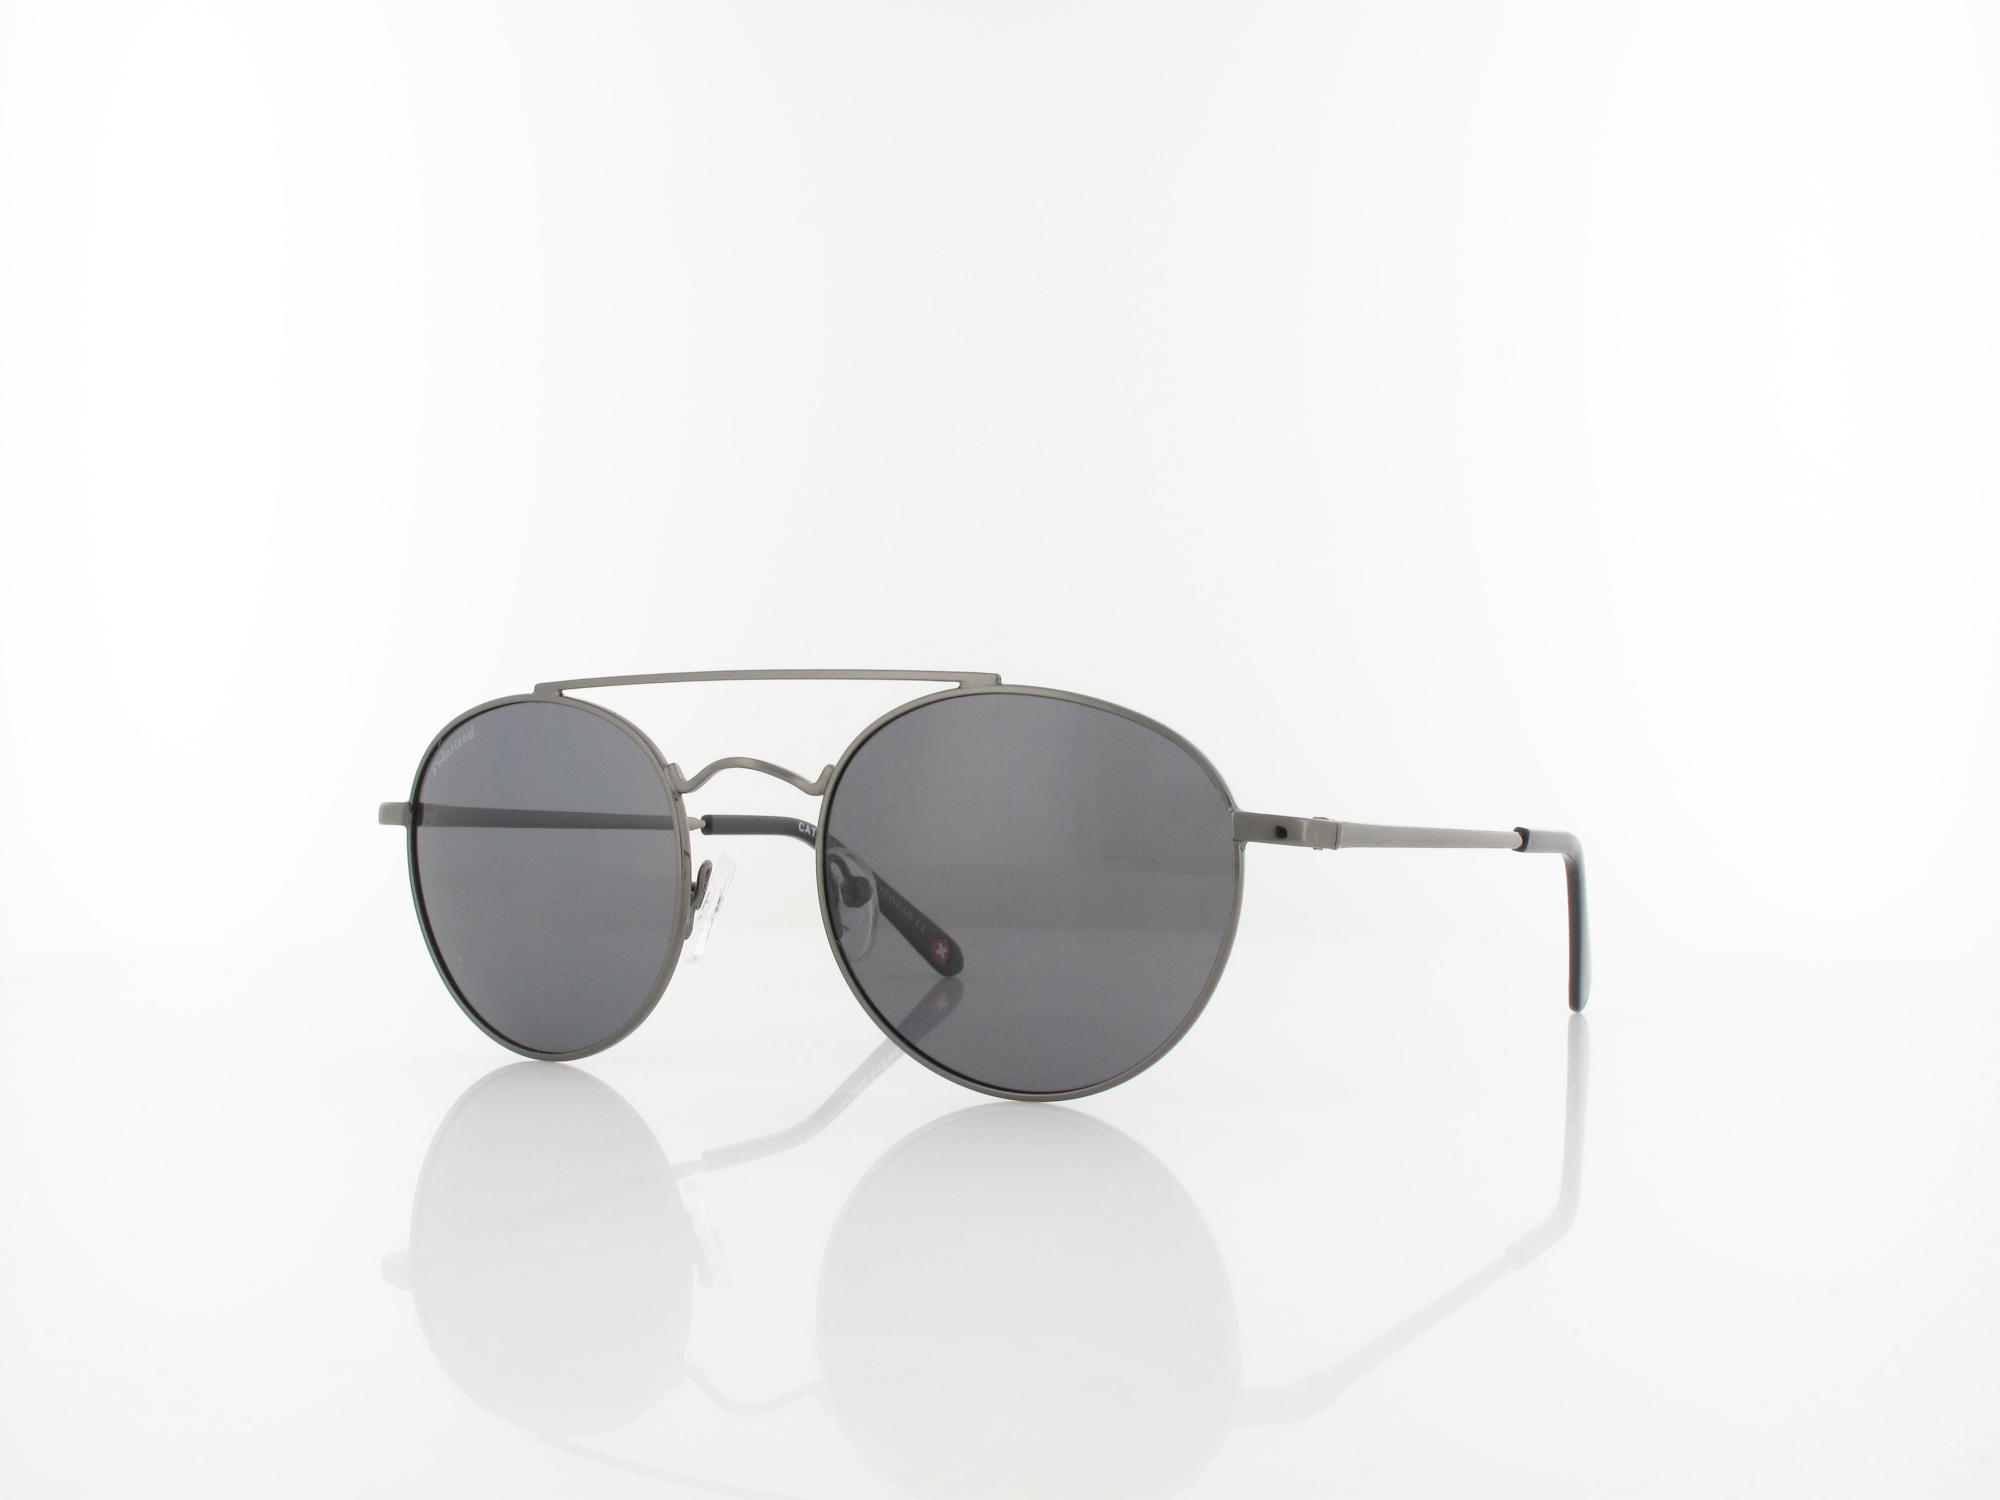 Brilando | MP91 0 52 | gunmetal / smoke polarized